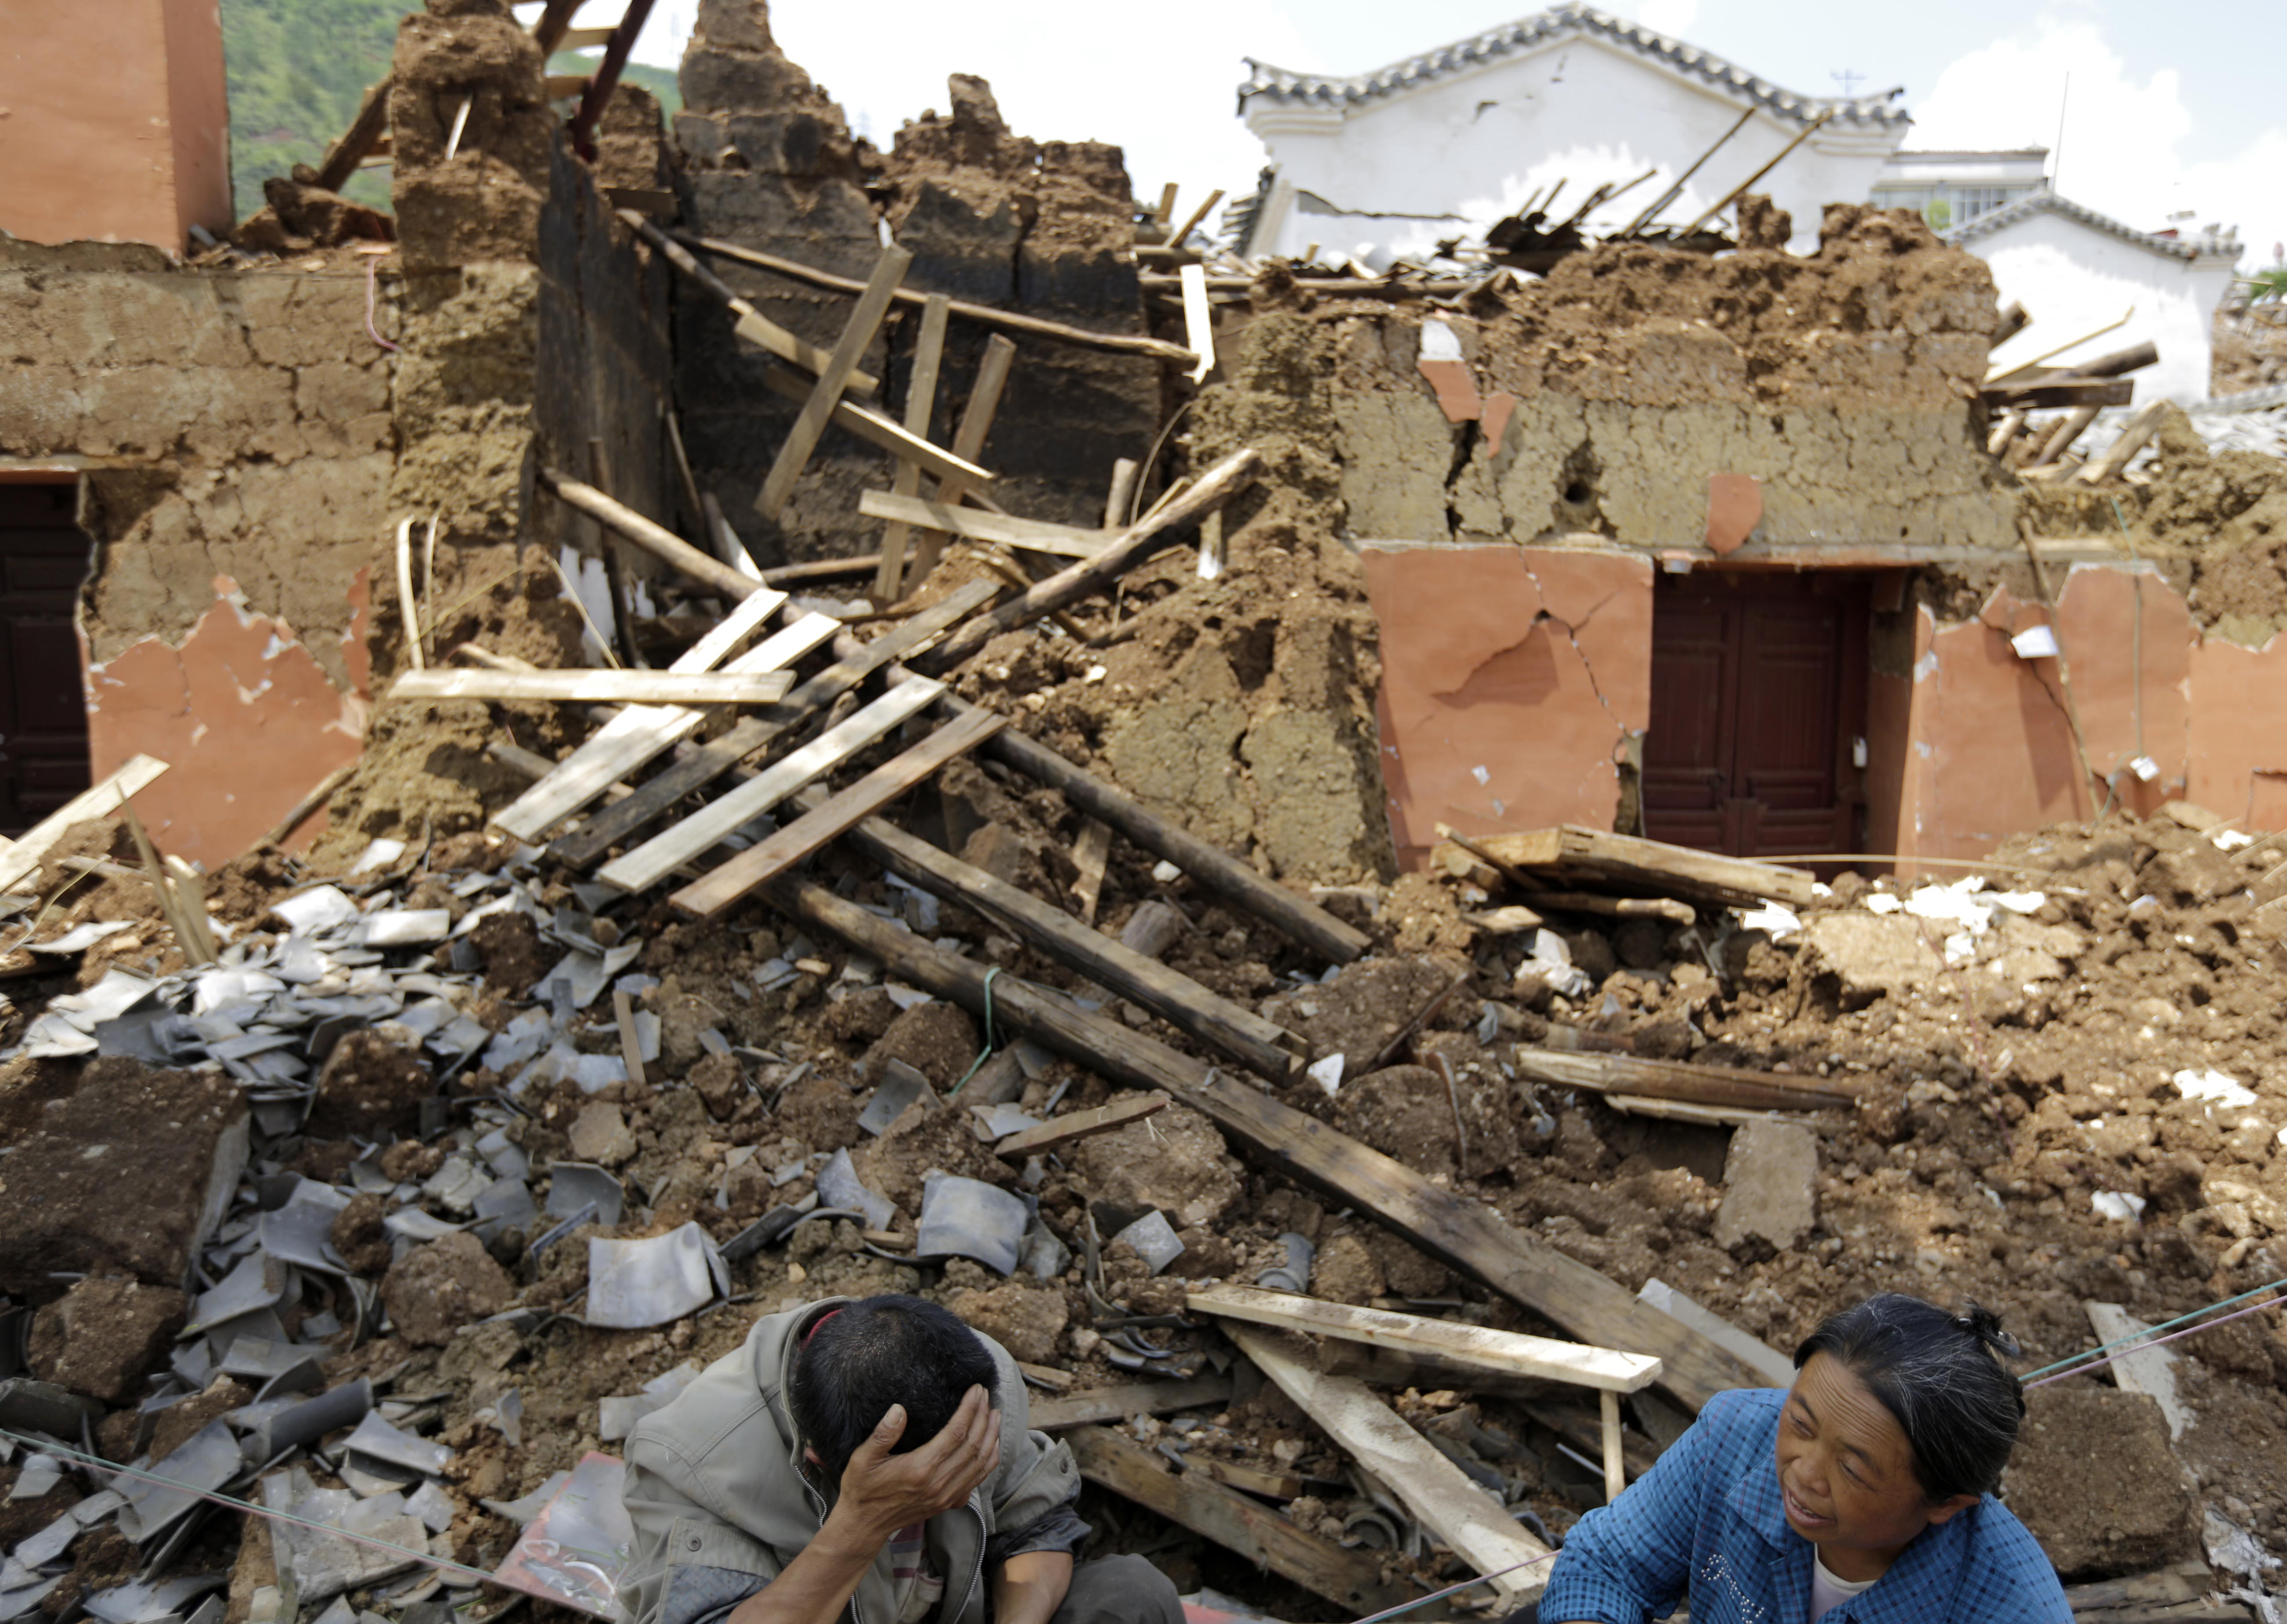 Villagers sit in front of their destroyed house following a massive earthquake in the town of Longtoushan in Ludian County in southwest China's Yunnan Province on Aug. 5, 2014.